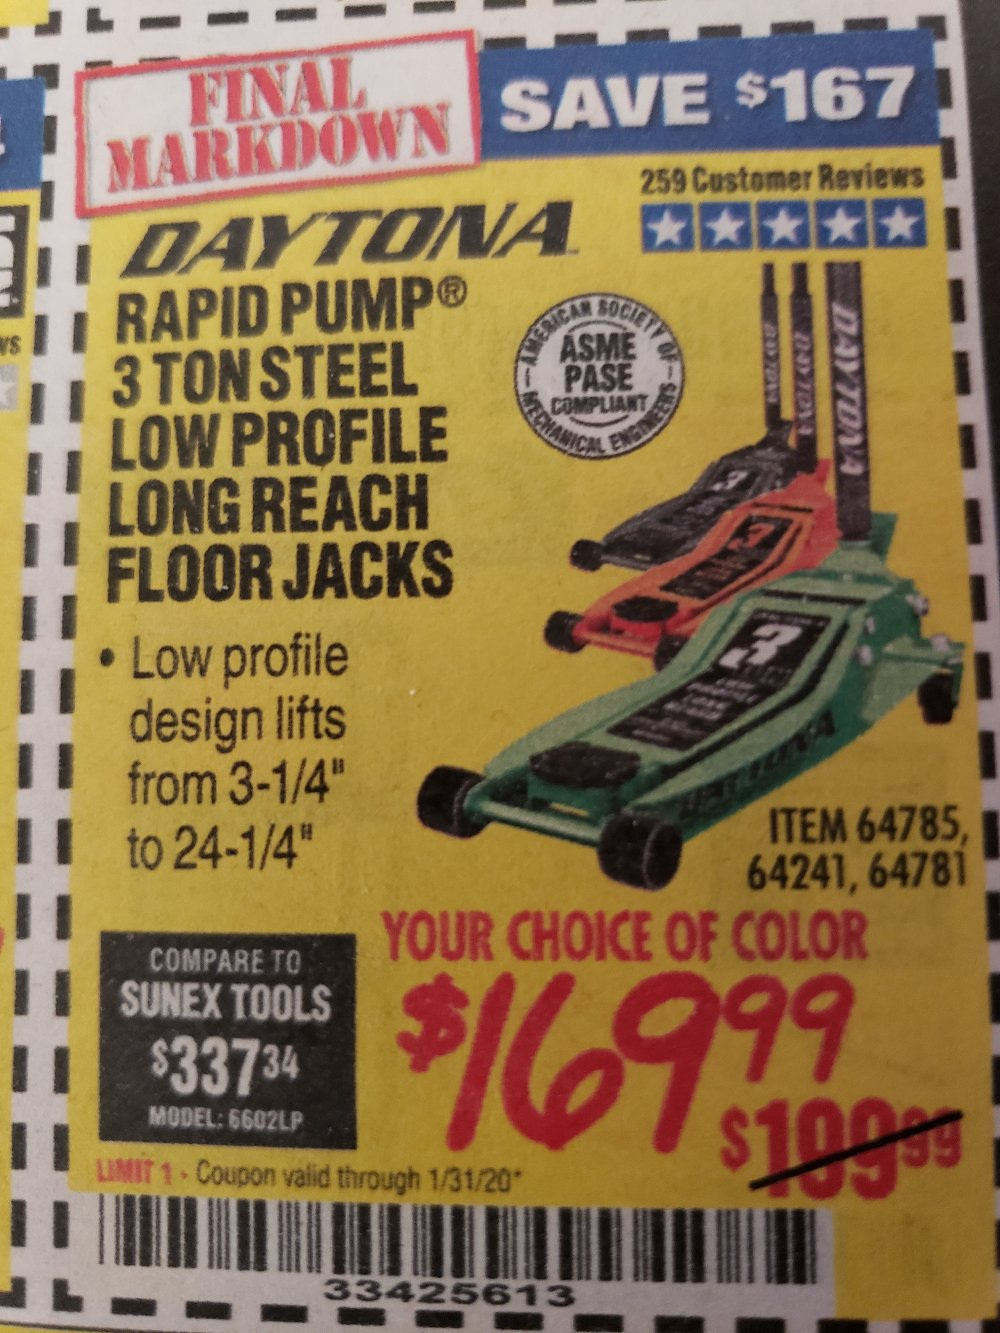 Harbor Freight Coupon, HF Coupons - Daytona 3 Ton Low Profile / Long Reach Floor Jack